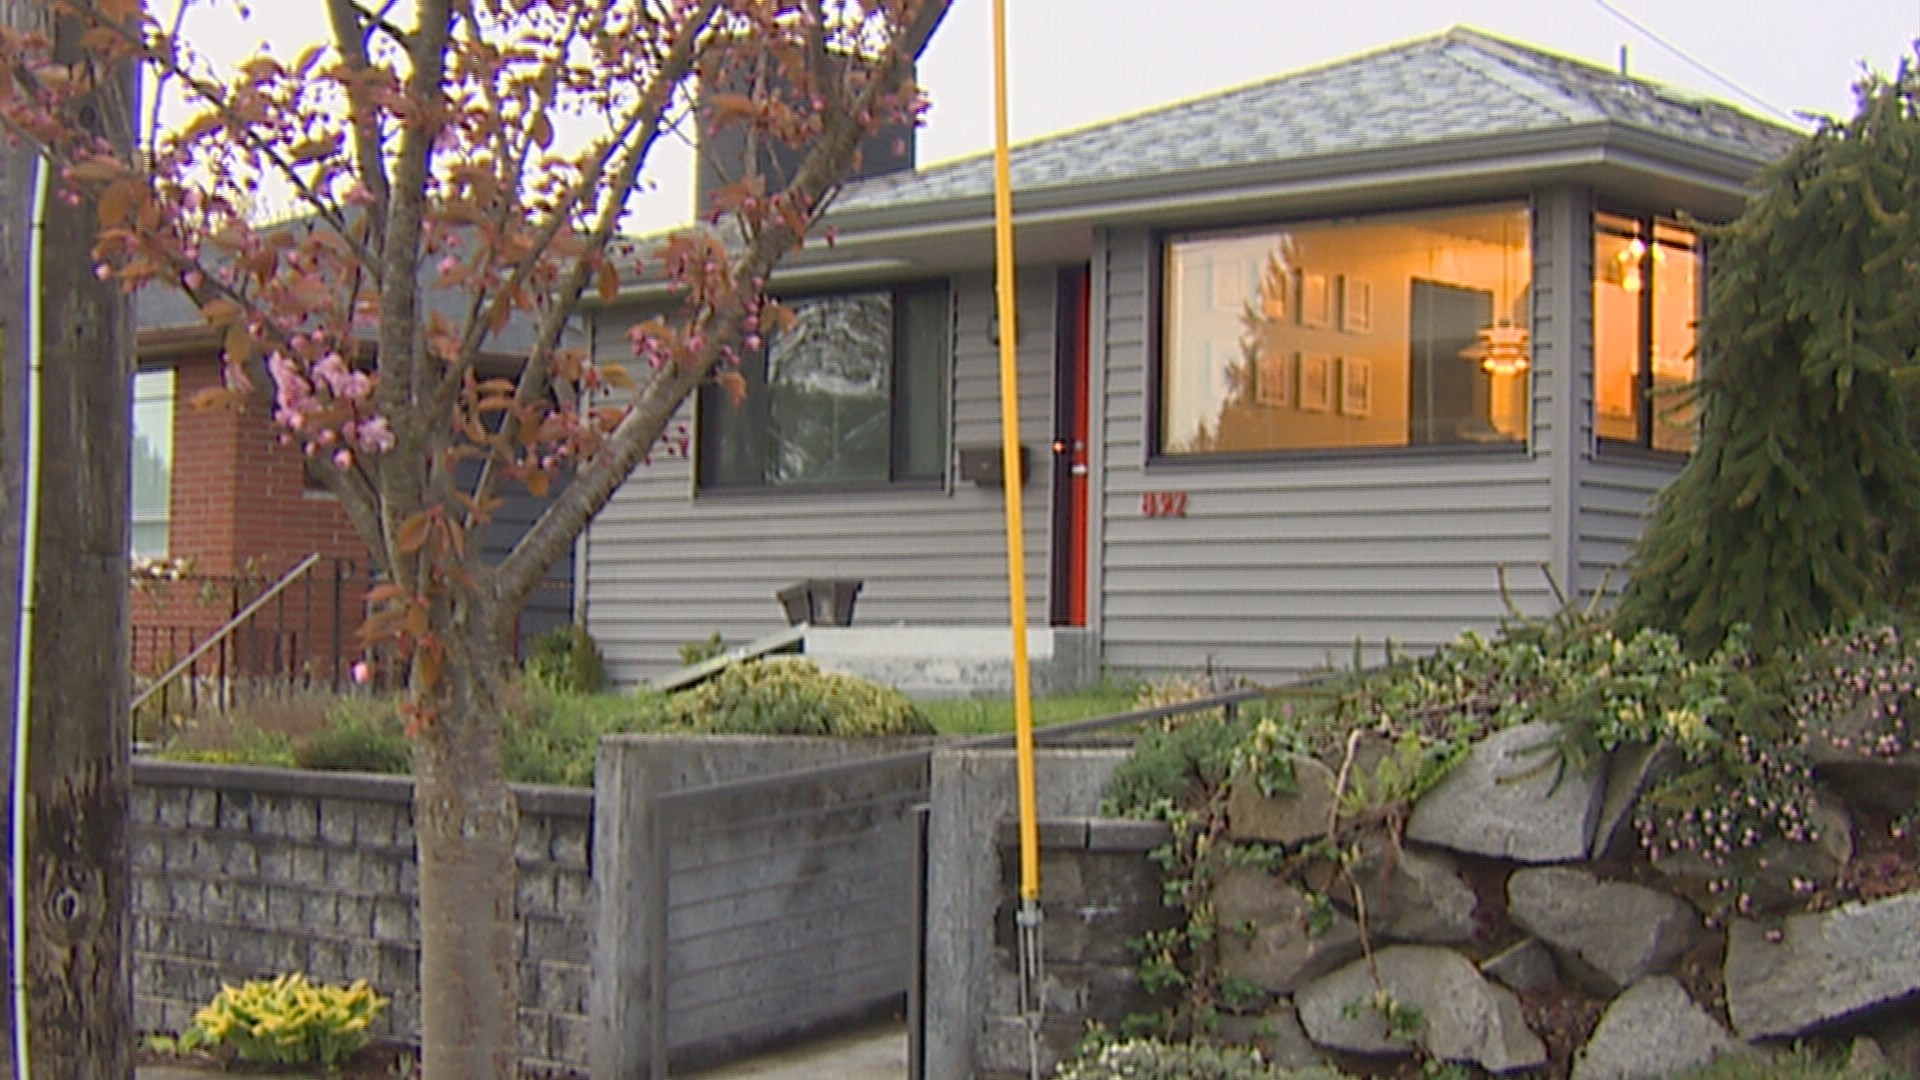 Selling Homes For Big Profits Become Common In Seattle